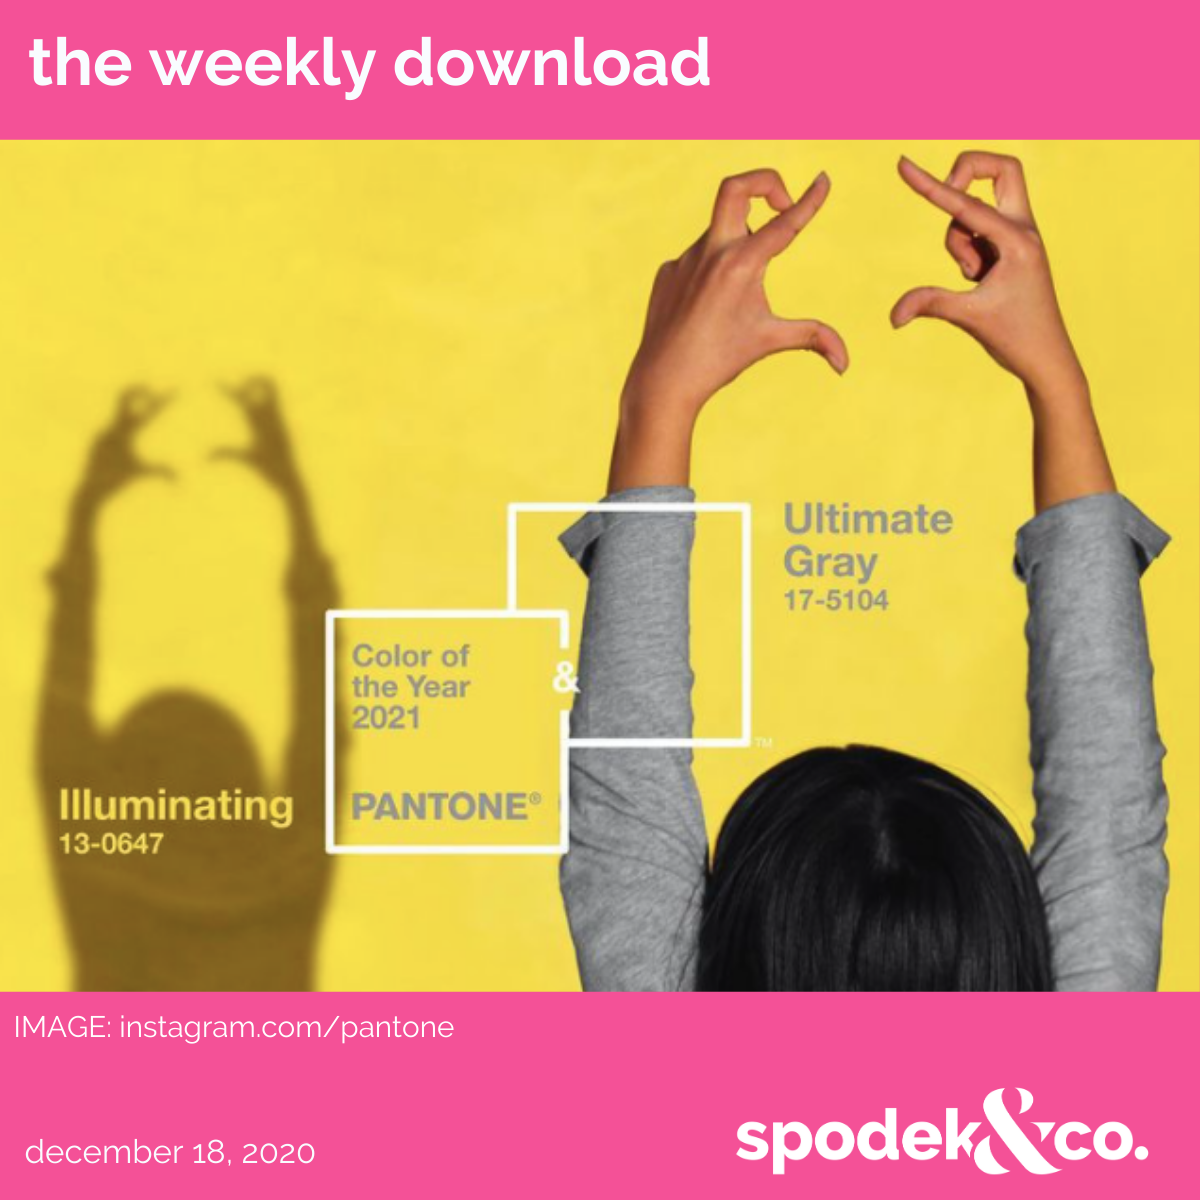 The Weekly Download – December 18, 2020